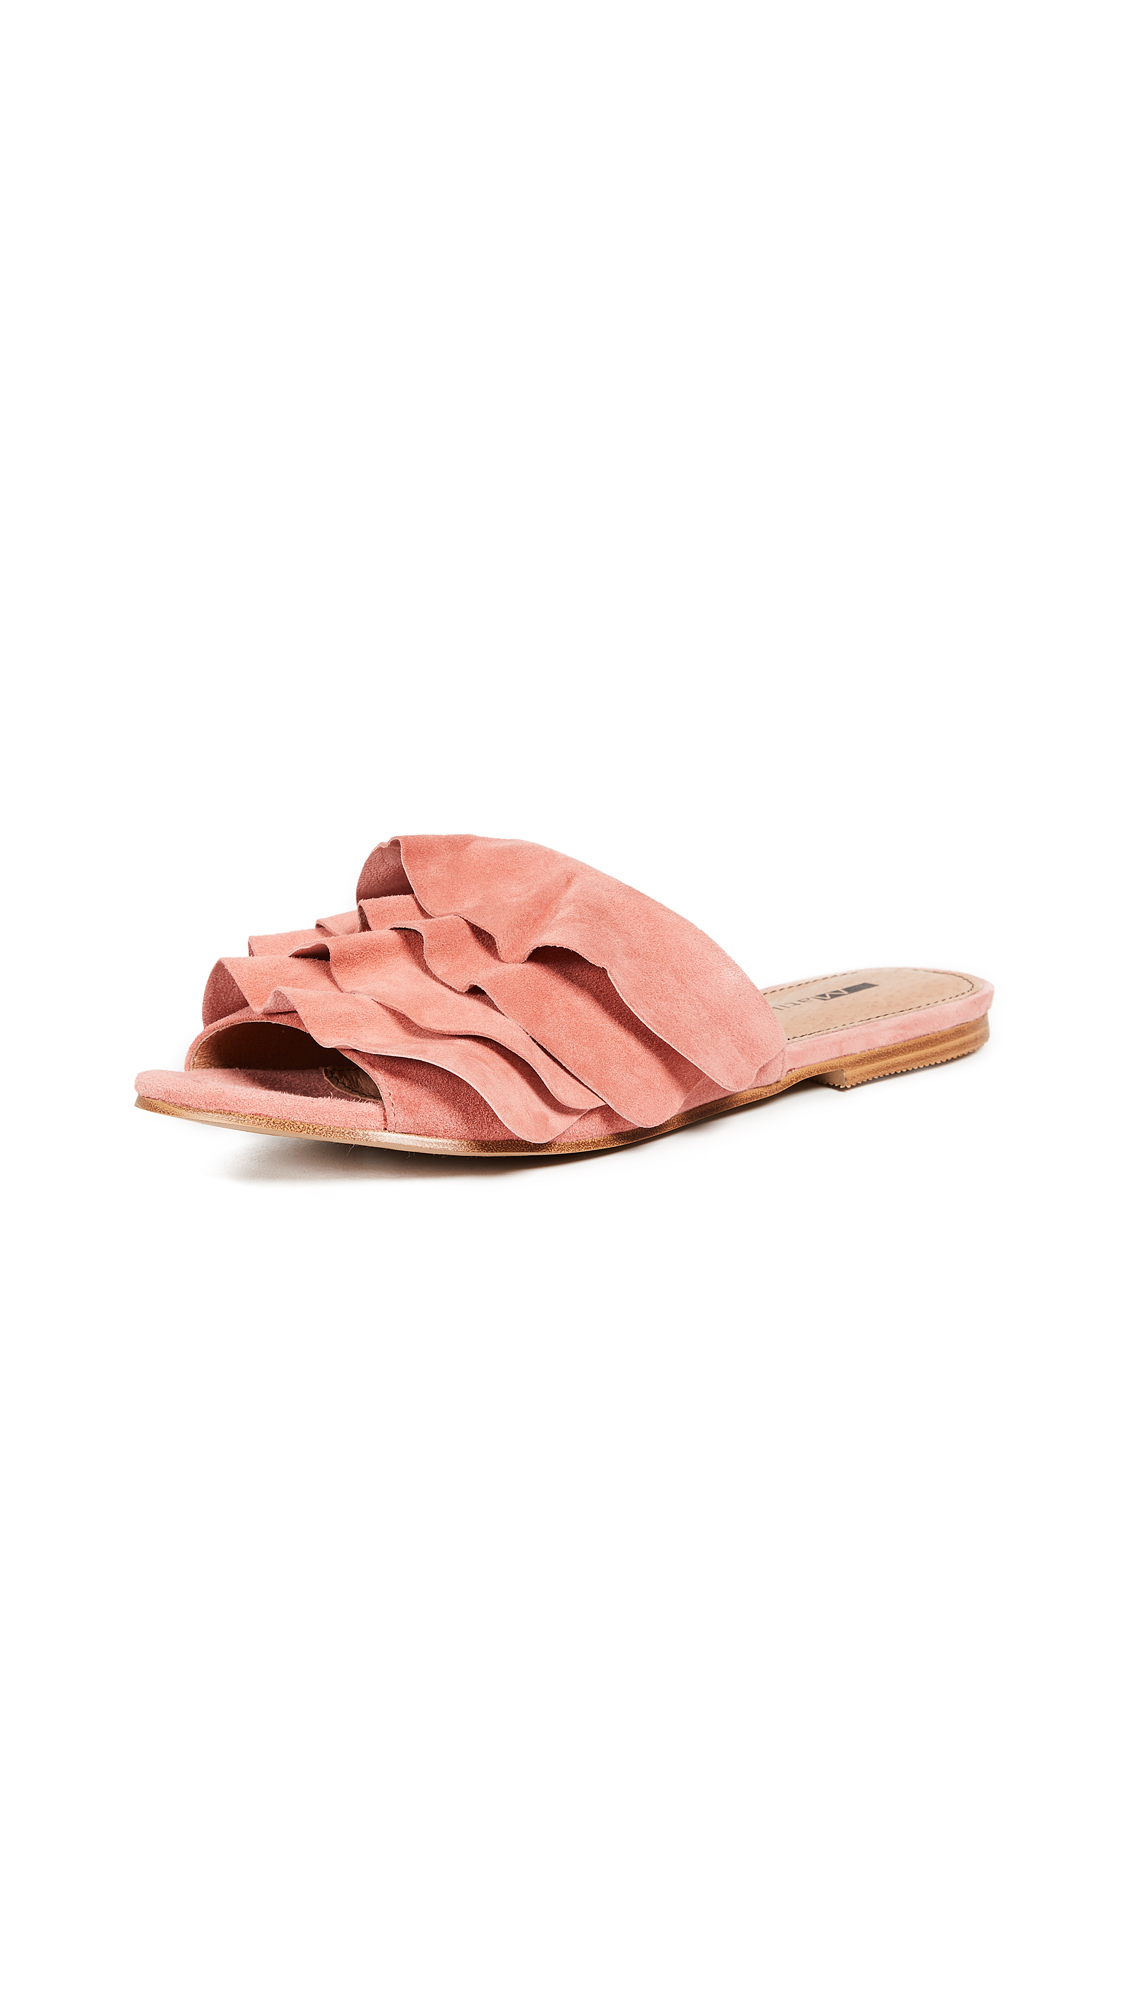 Matiko Roselyn Ruffled Sandals - Peach